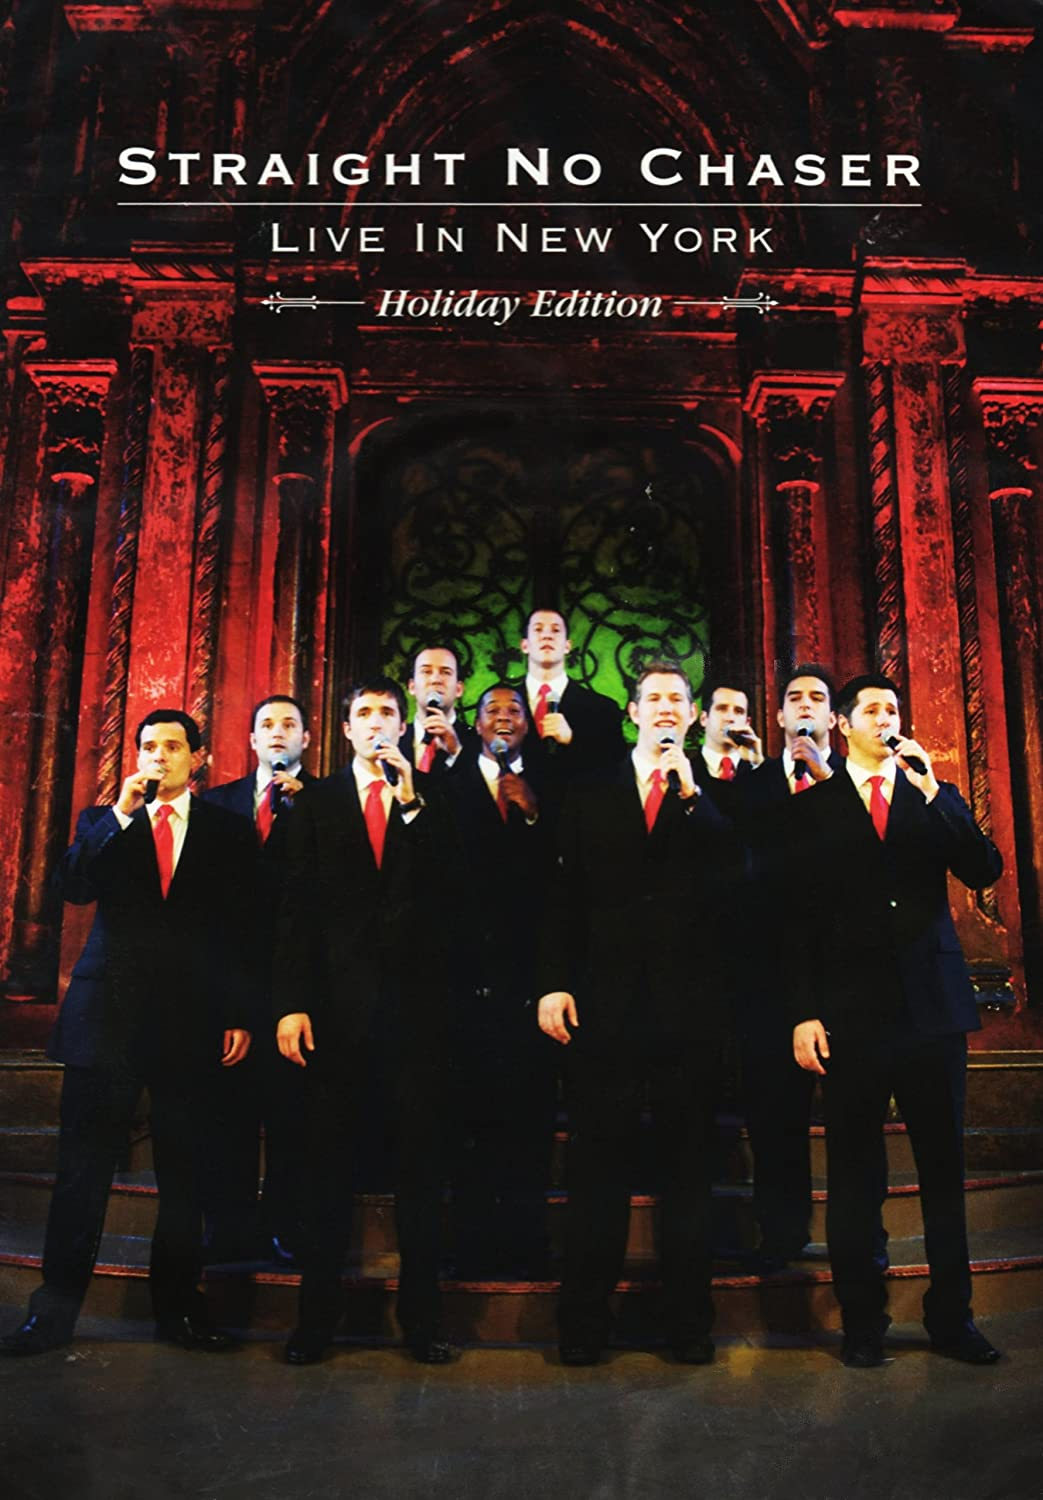 Amazon.com: Straight No Chaser: Live in New York - Holiday Edition ...